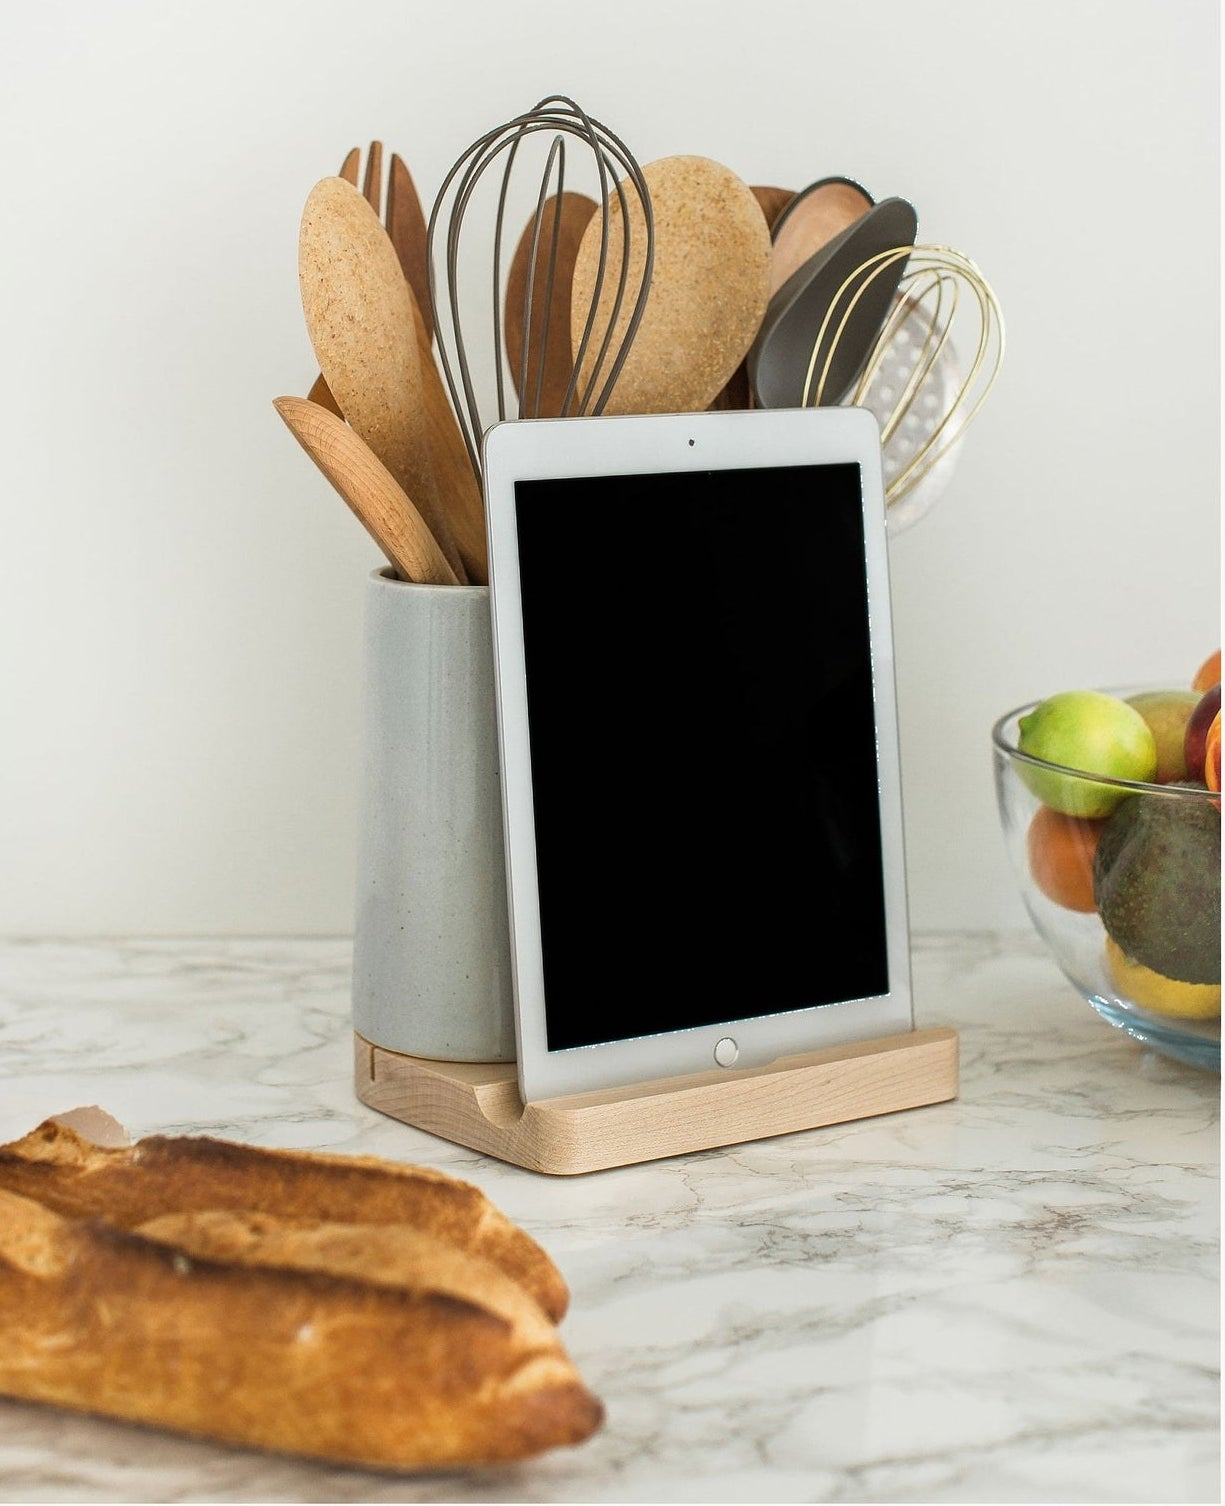 wood base tablet dock and grey ceramic holder with kitchen utensils in it